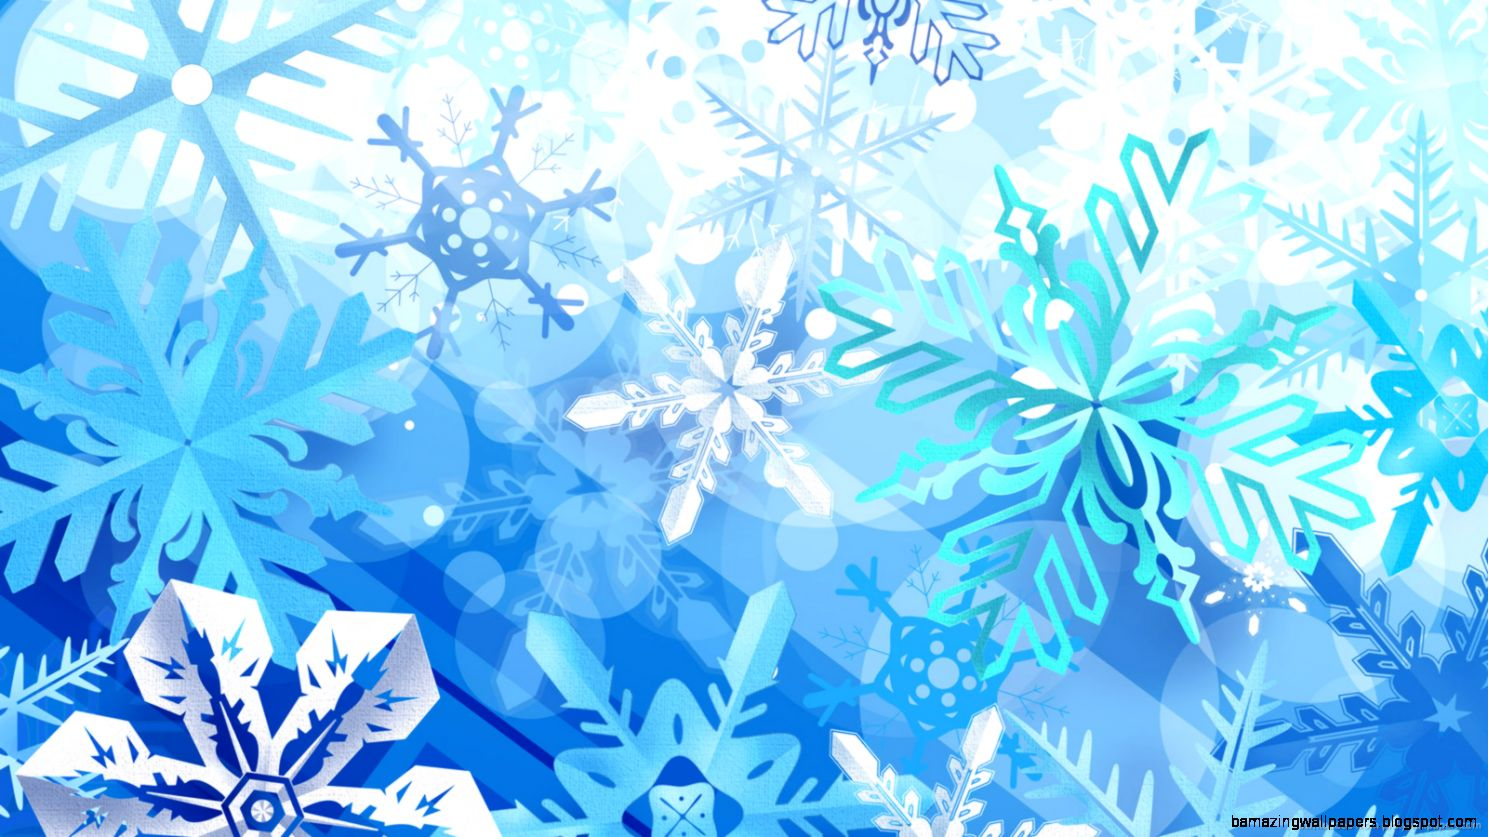 Download 1600x900 Blue Snowflakes Wallpaper